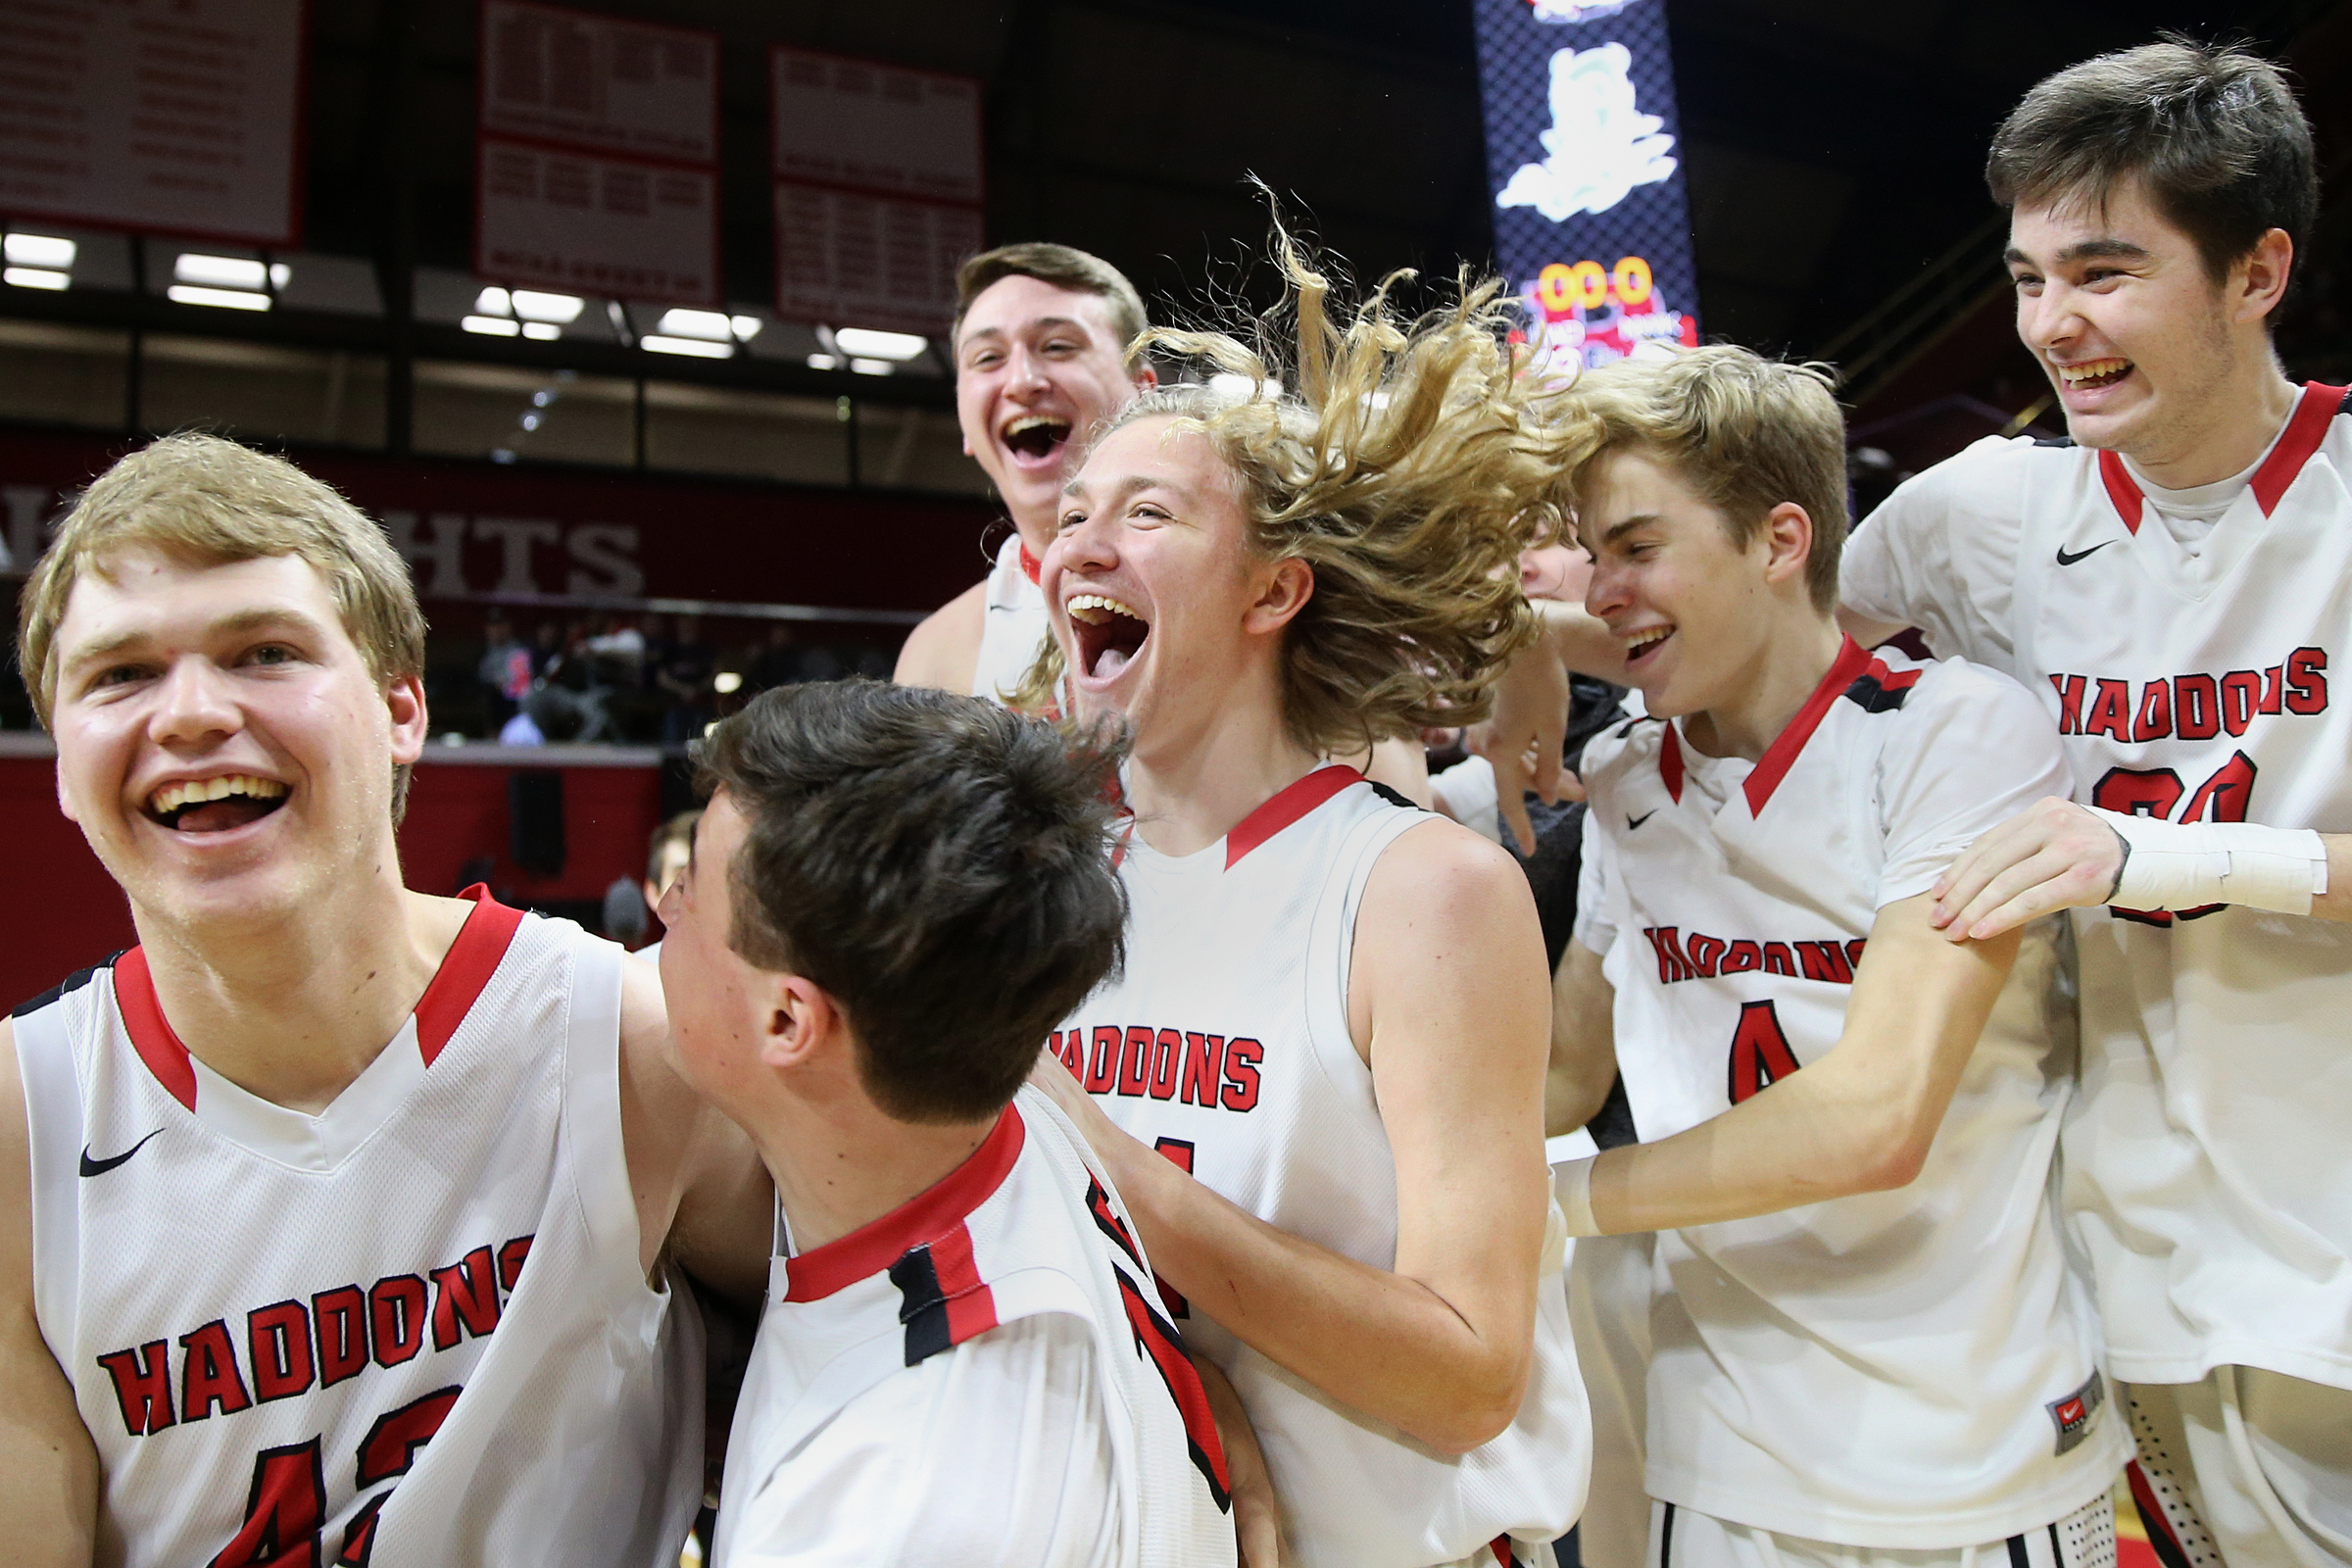 Haddonfield players celebrate Group 2 state title in basketball.